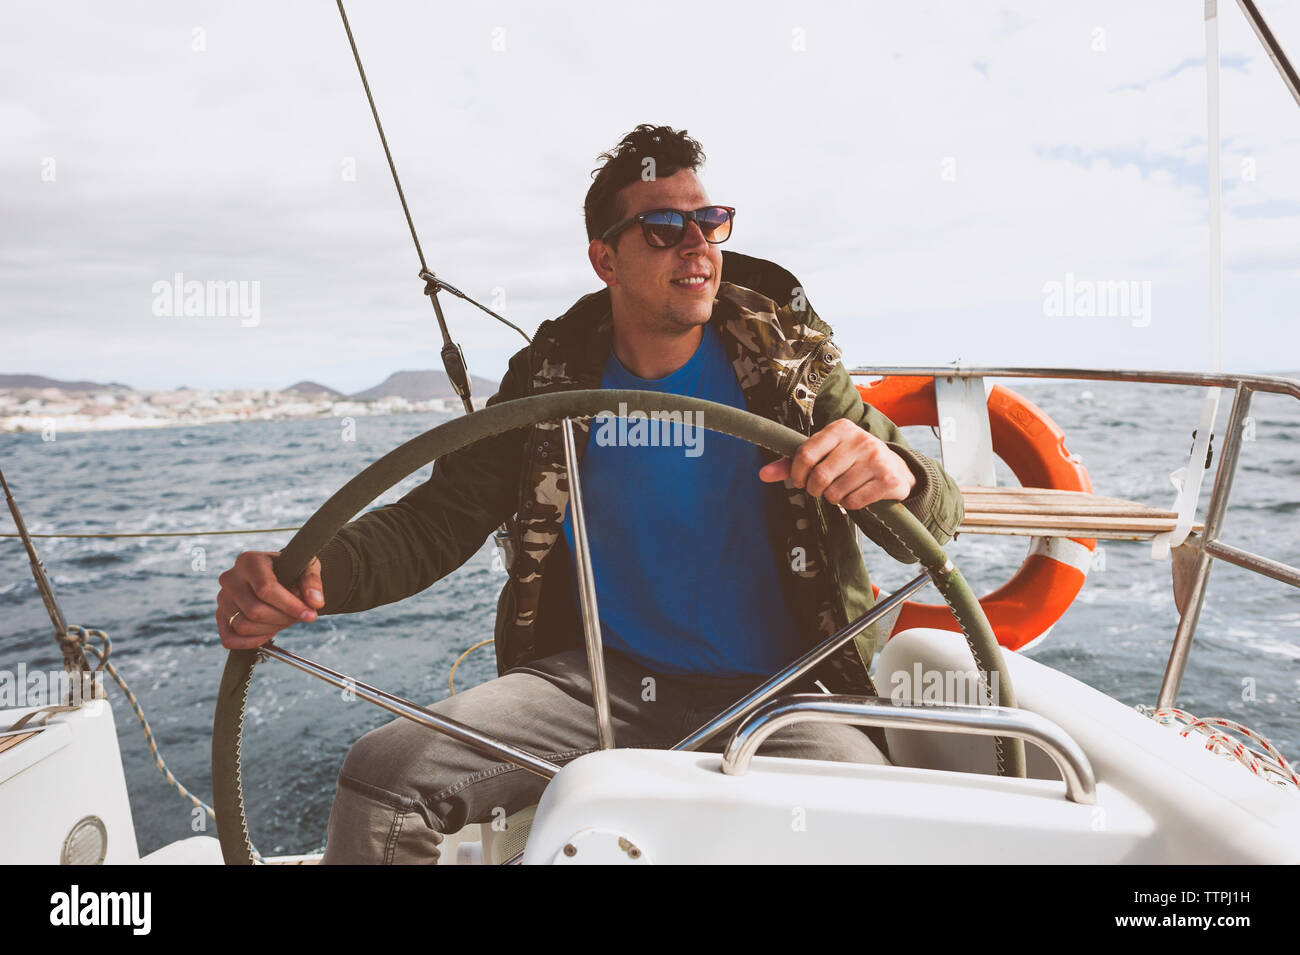 Happy man driving nautical vessel on sea against cloudy sky - Stock Image